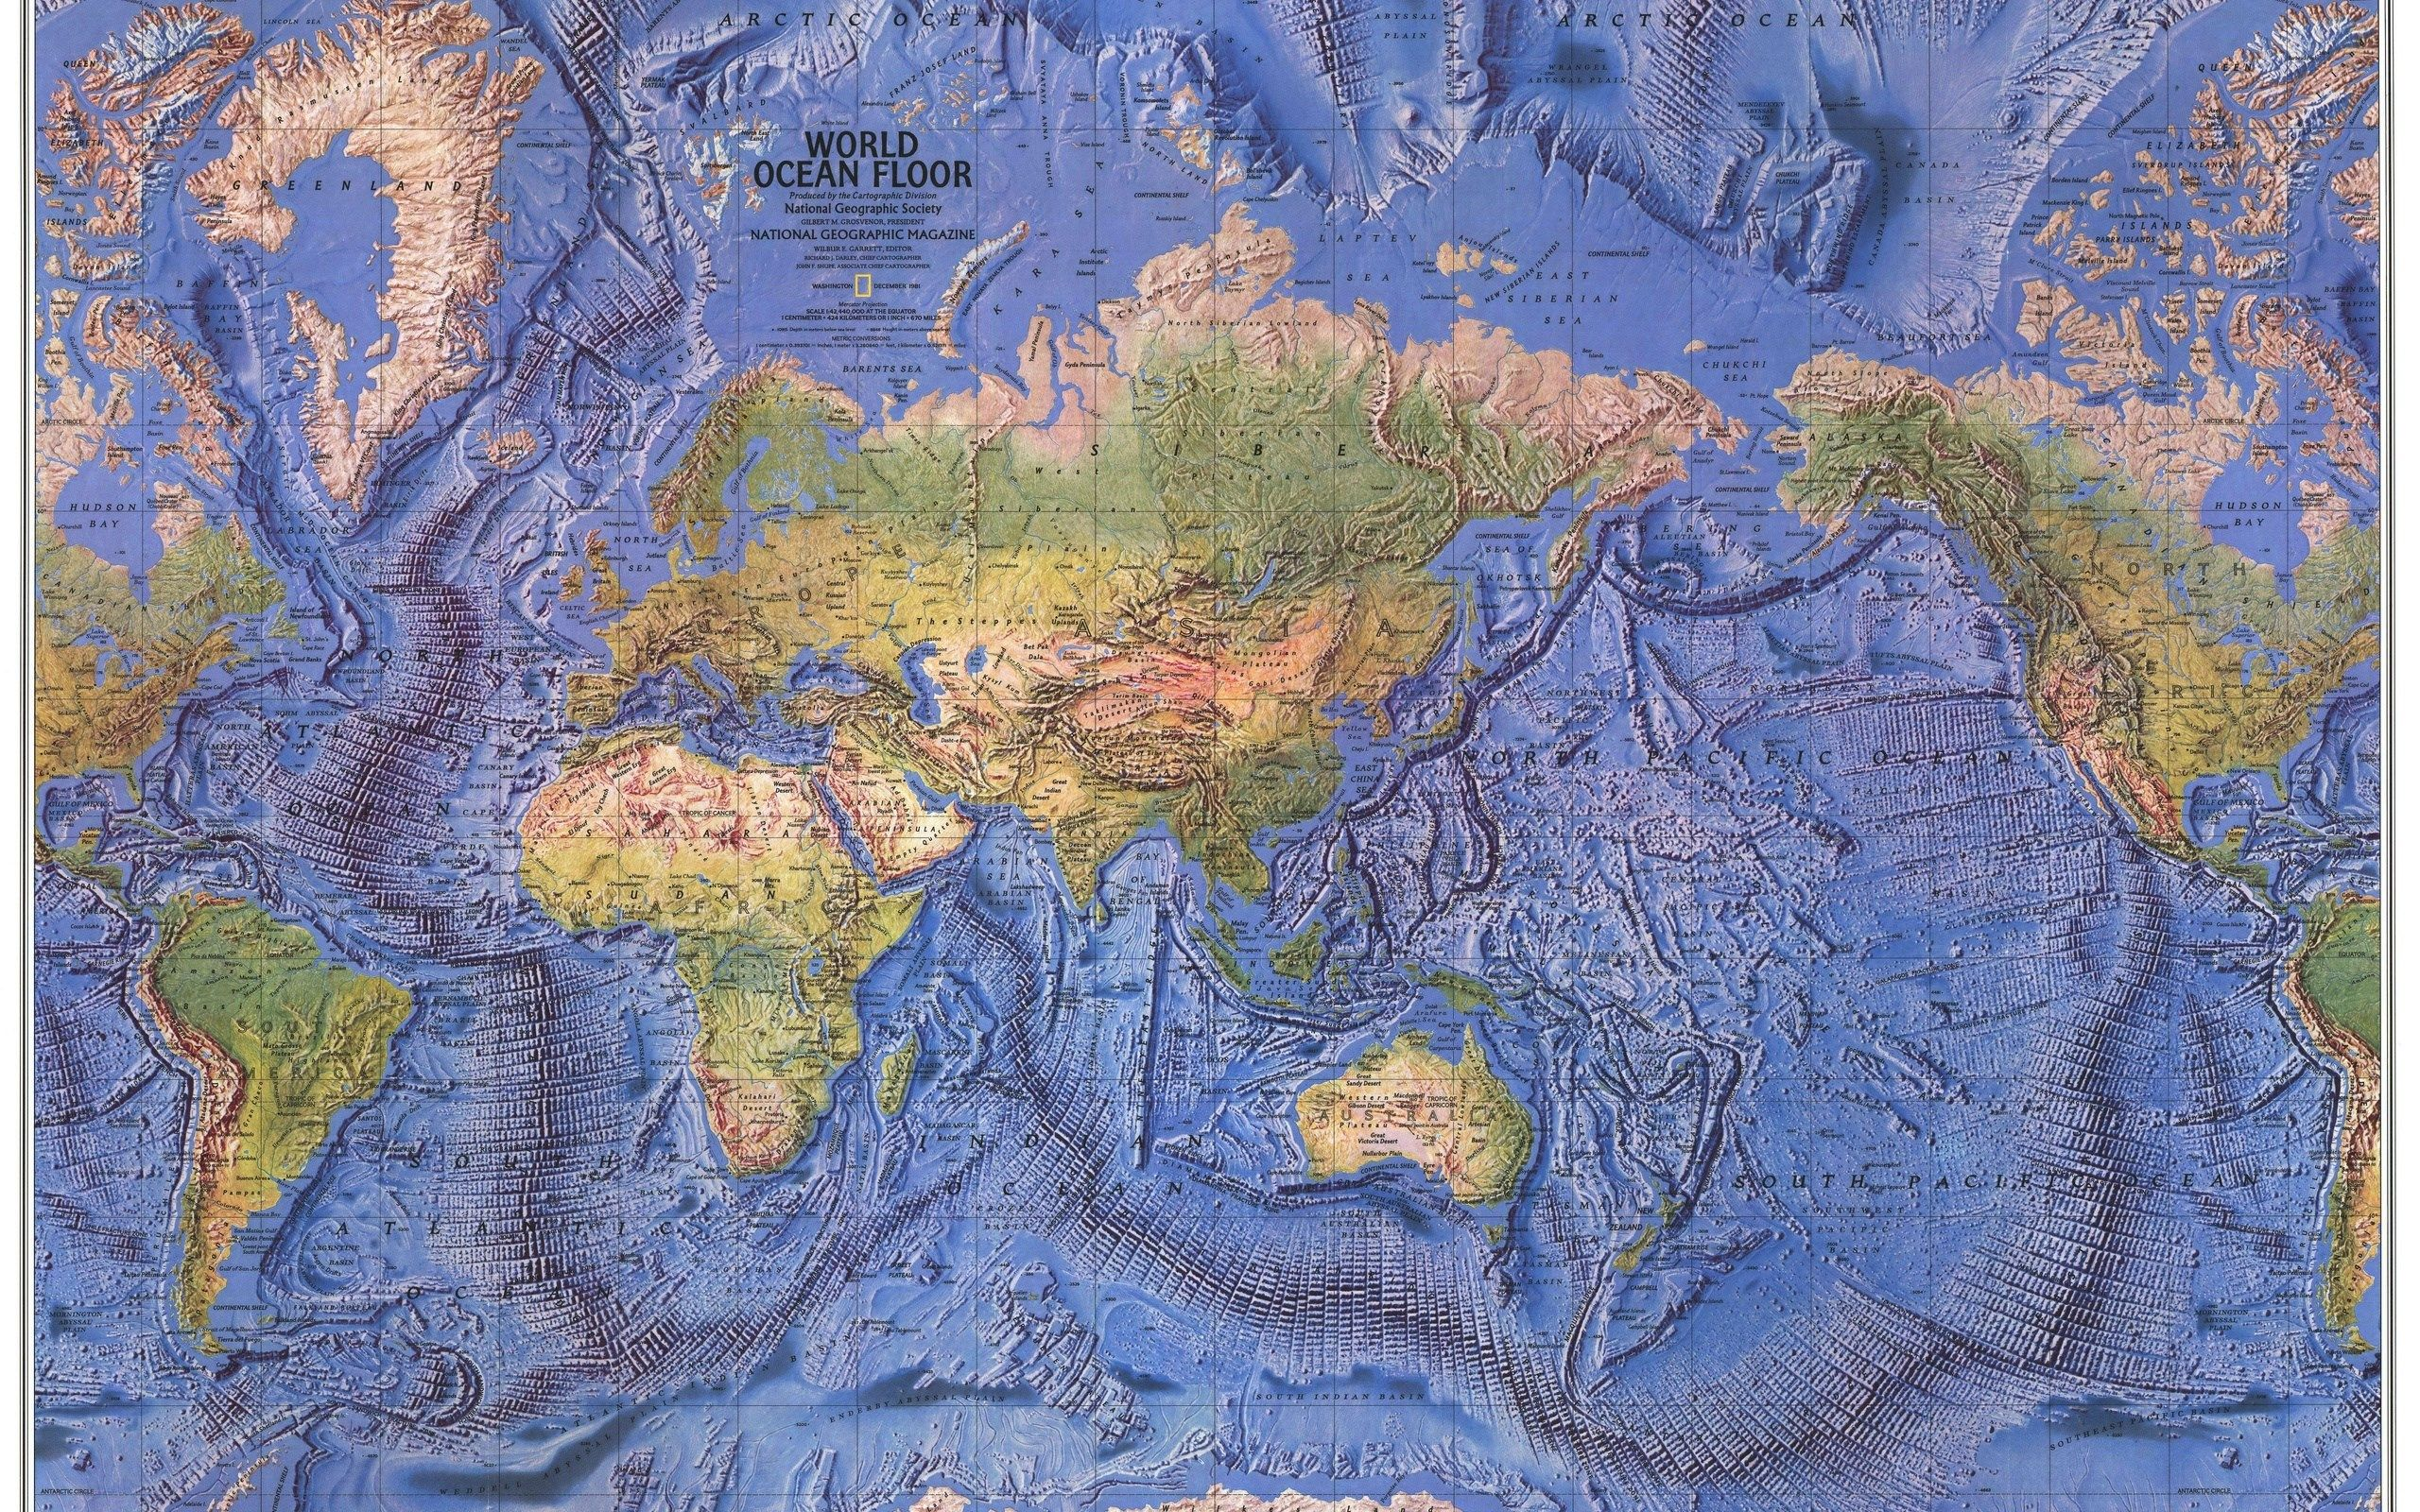 High resolution wallpapers world map backround by walcott young high resolution wallpapers world map backround by walcott young 2017 03 16 gumiabroncs Choice Image